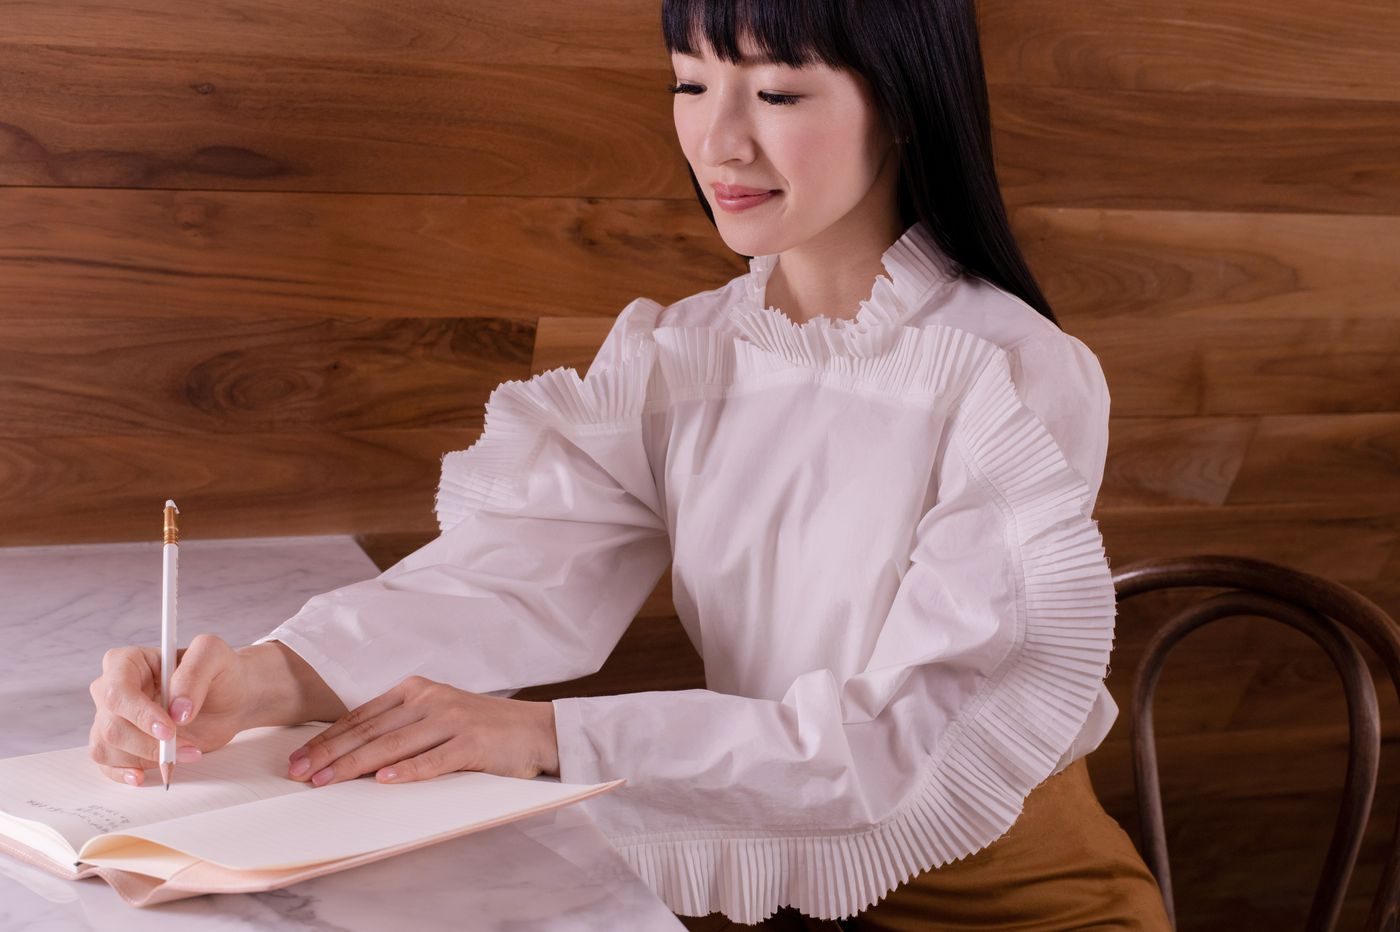 Marie Kondo is stuck at home, too. Here's how she is sparking joy.